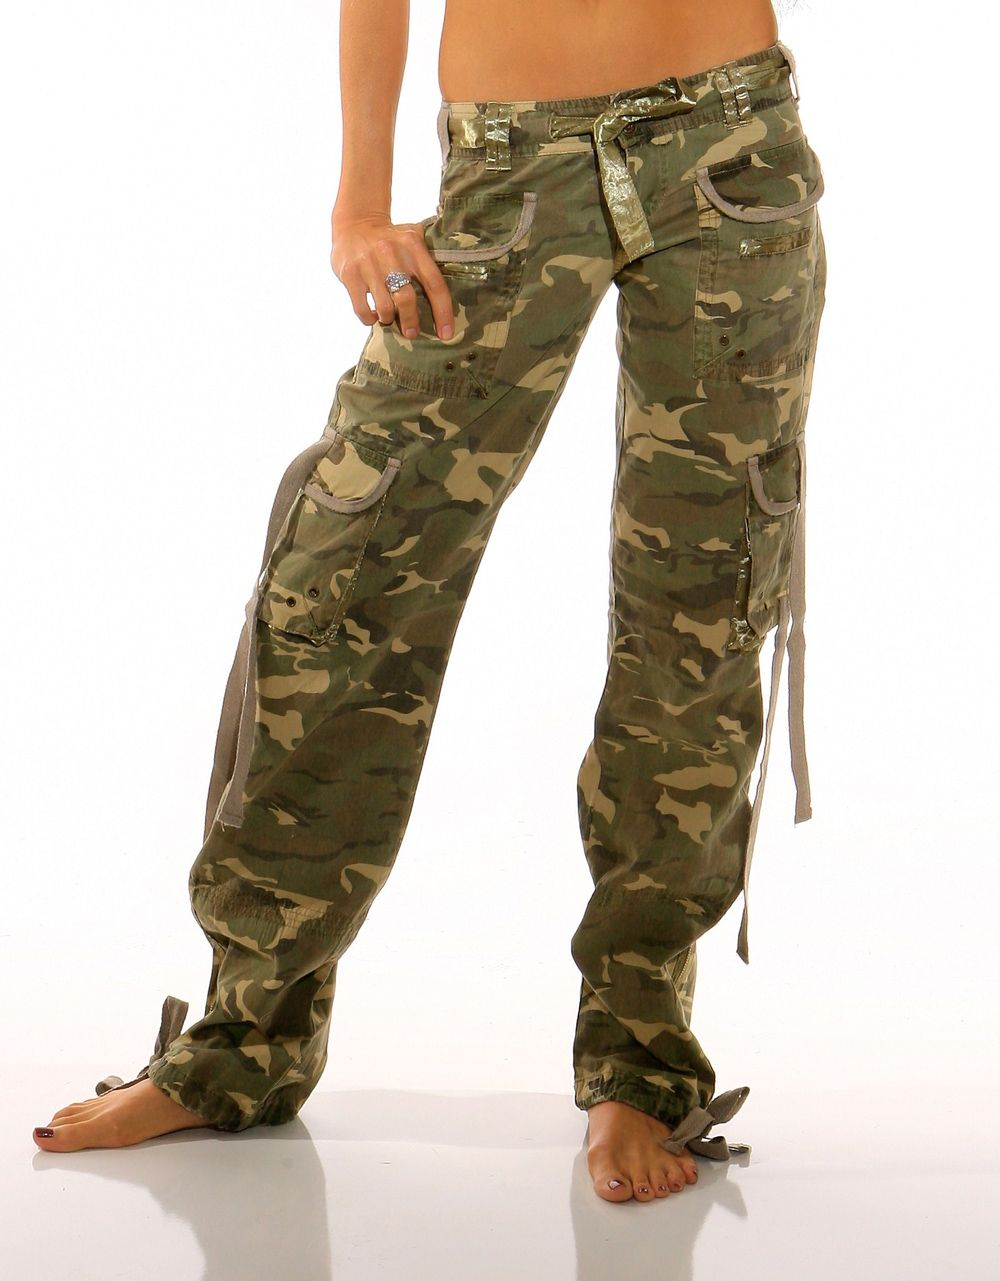 low waist camo cargo pants tall | ... latest styles & trends in ...